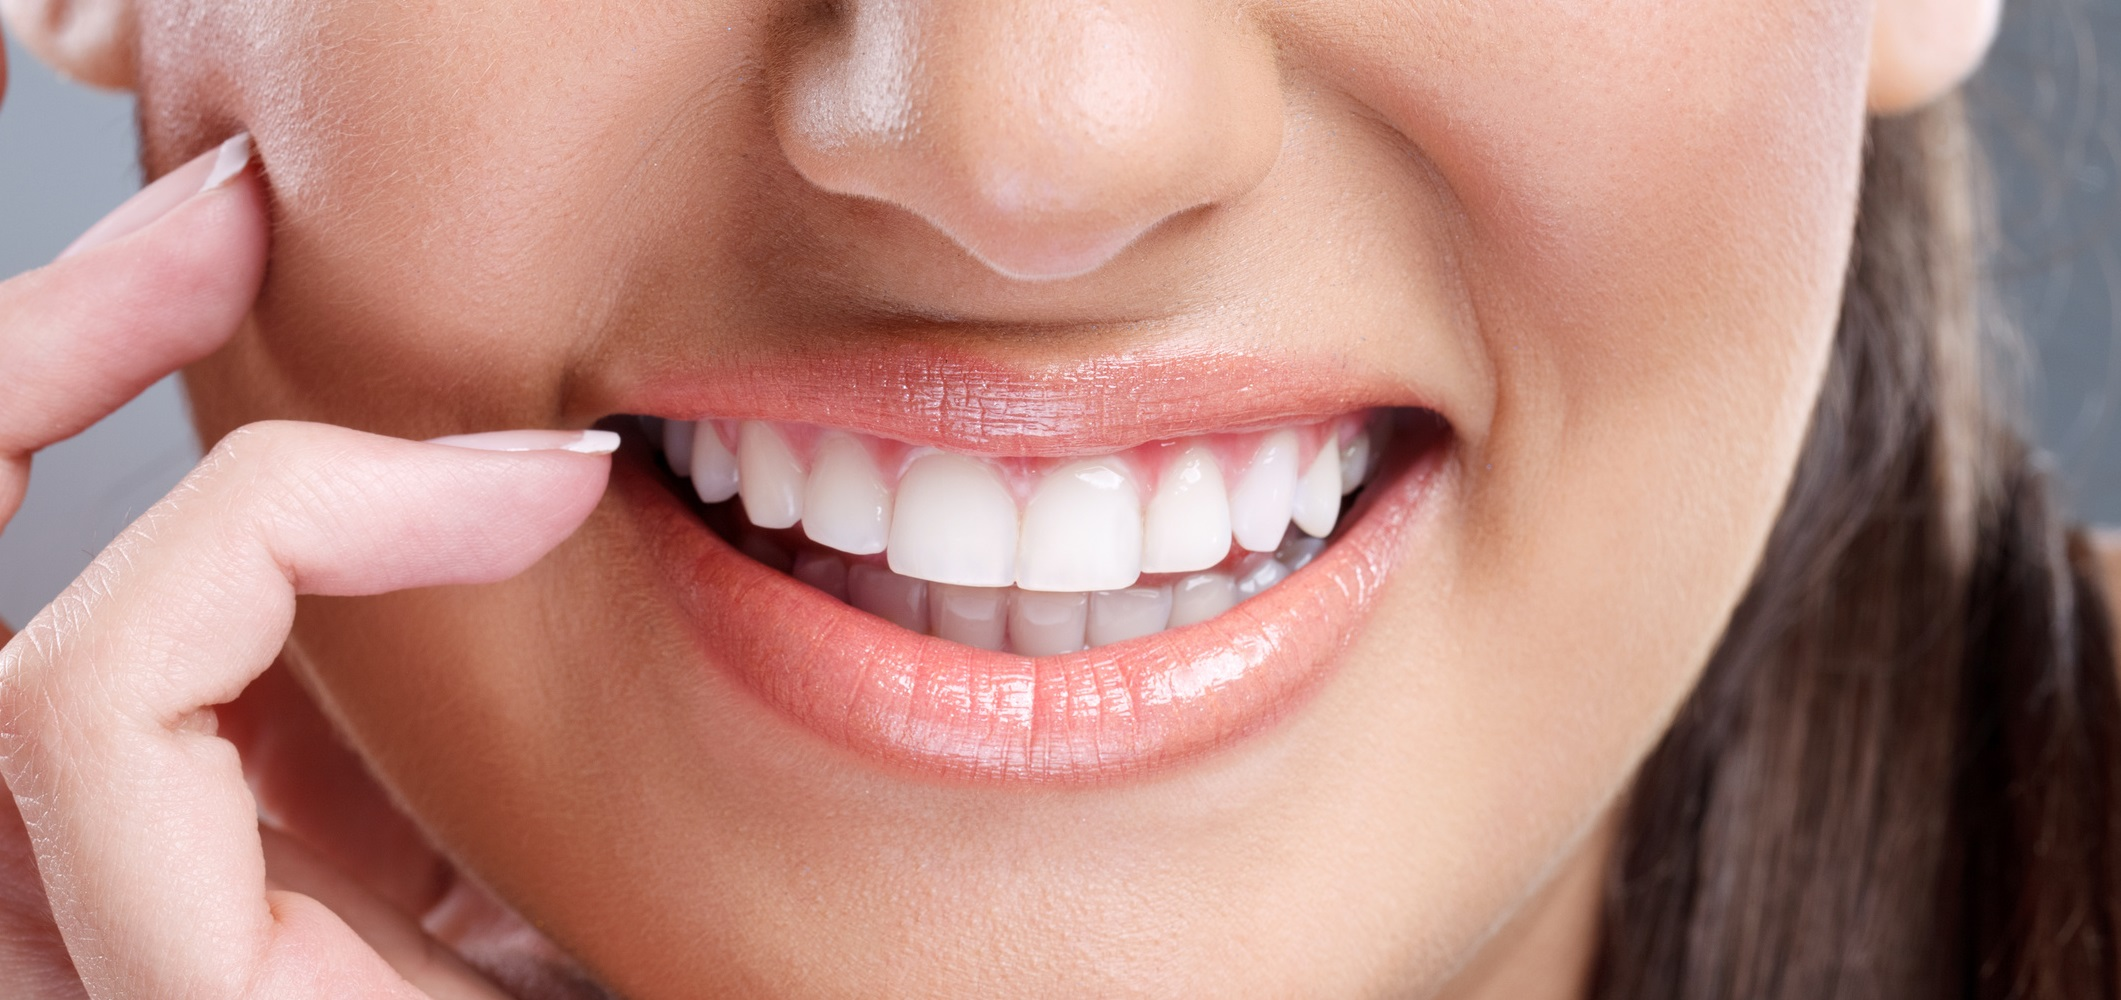 Top 9 Best Teeth Whitening Mouthwash Of 2020 Reviews